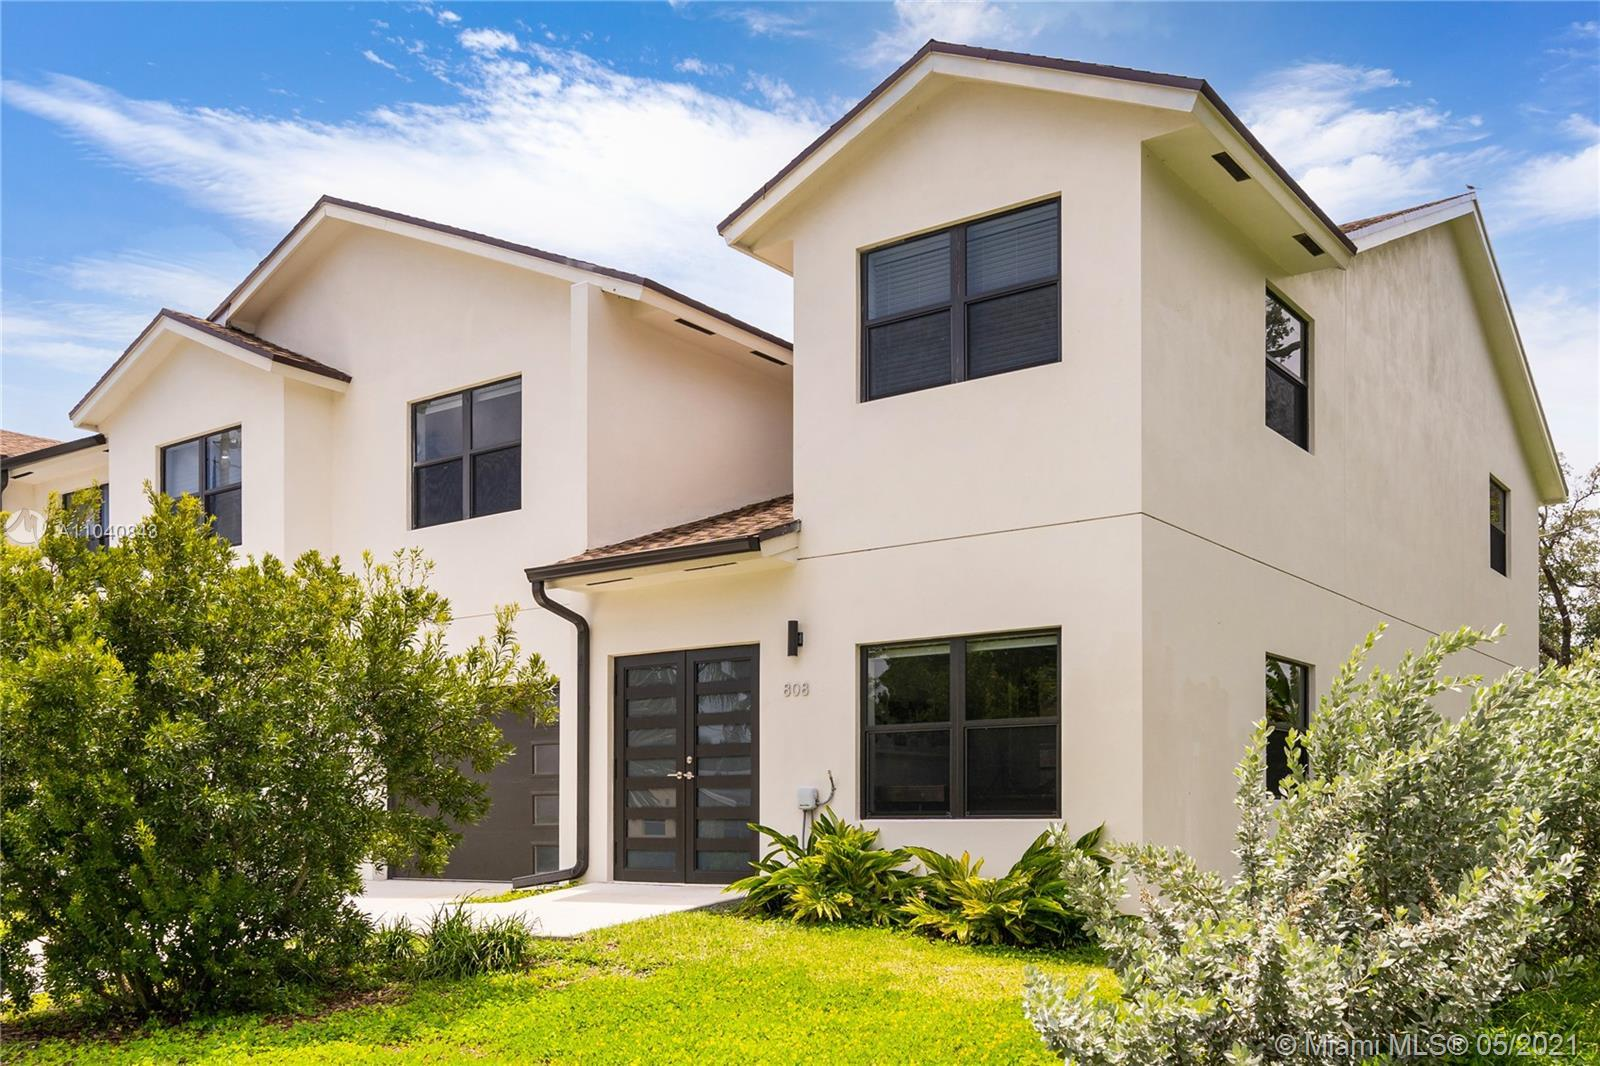 AN ABSOLUTELY STUNNING, MUST SEE 2020 HOME. SPACIOUS, MODERN, ELEGANT DESIGN. OPEN CONCEPT KITCHEN W